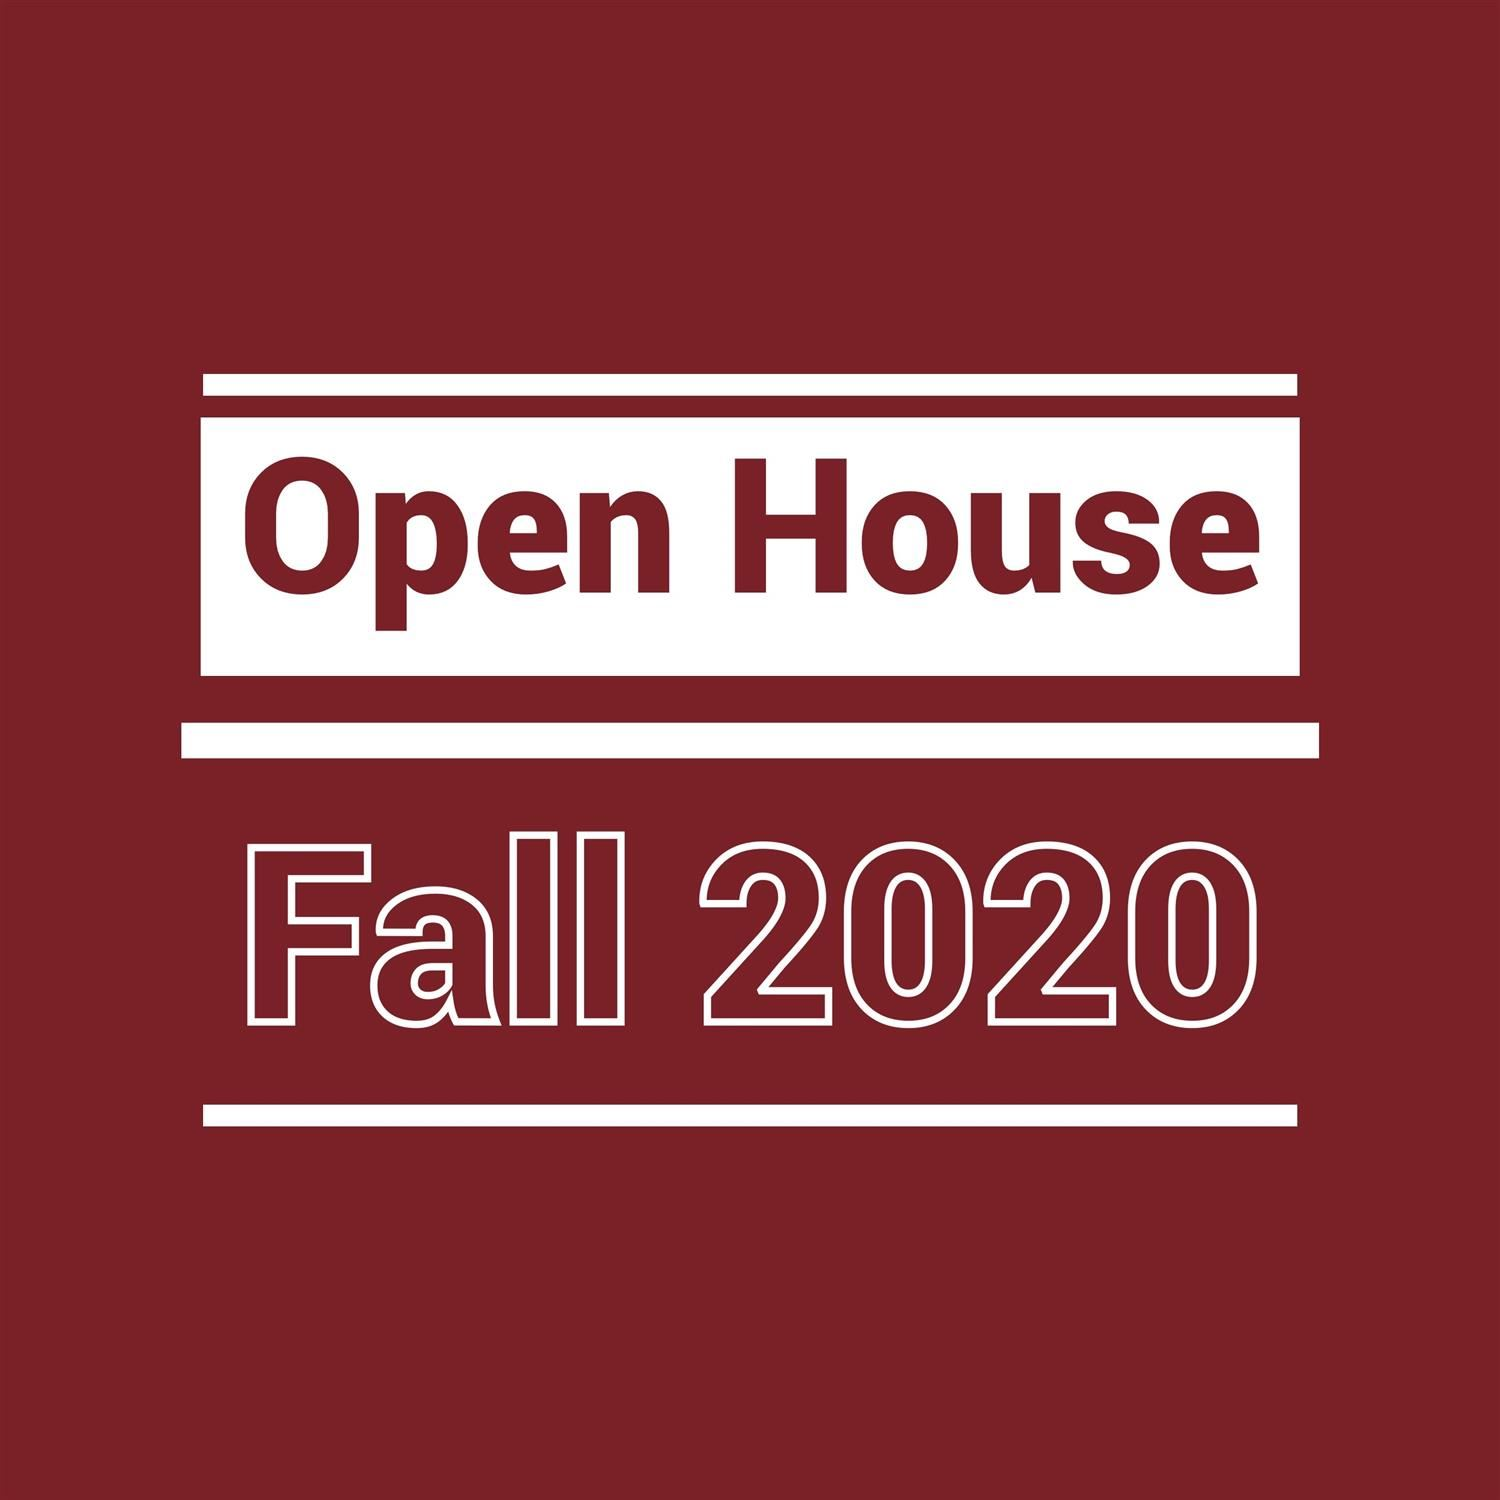 Open House Fall 2020